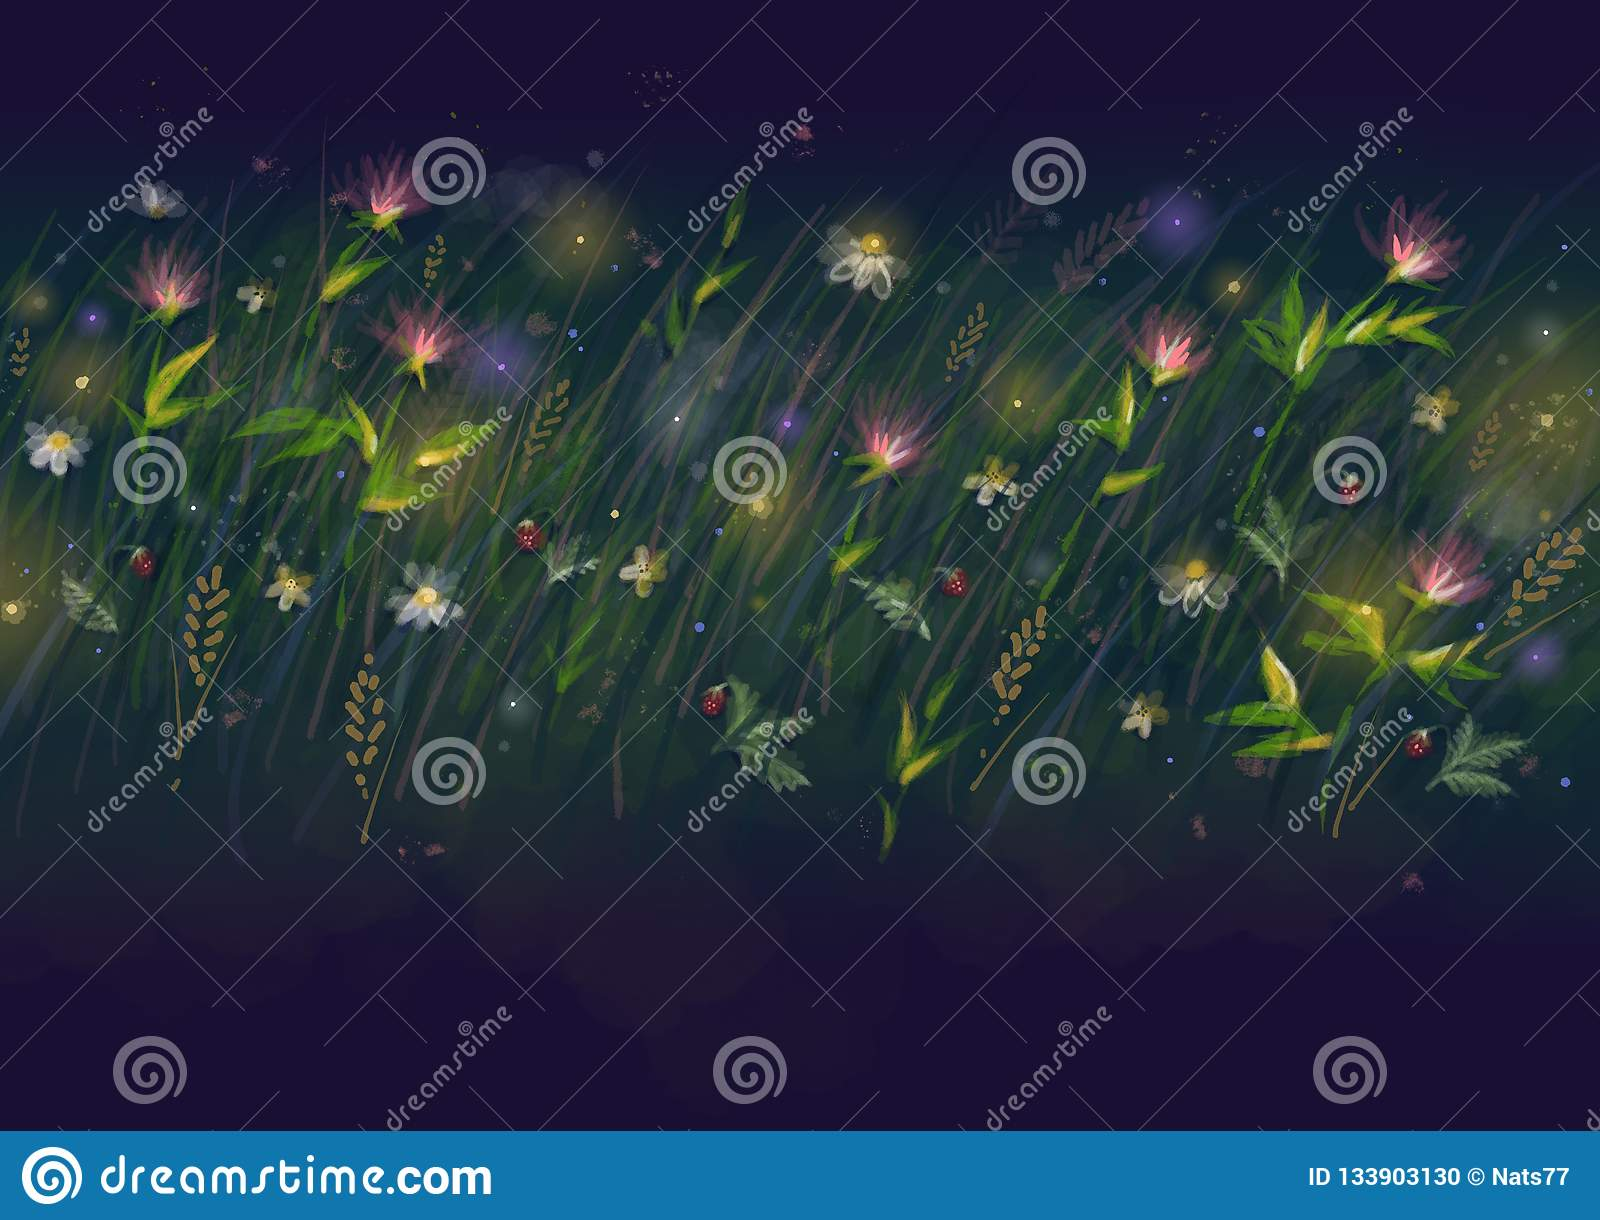 Neon garden leaf digital illustration. Green and cyan floral abstraction. Summer flowerbed banner template. Bright